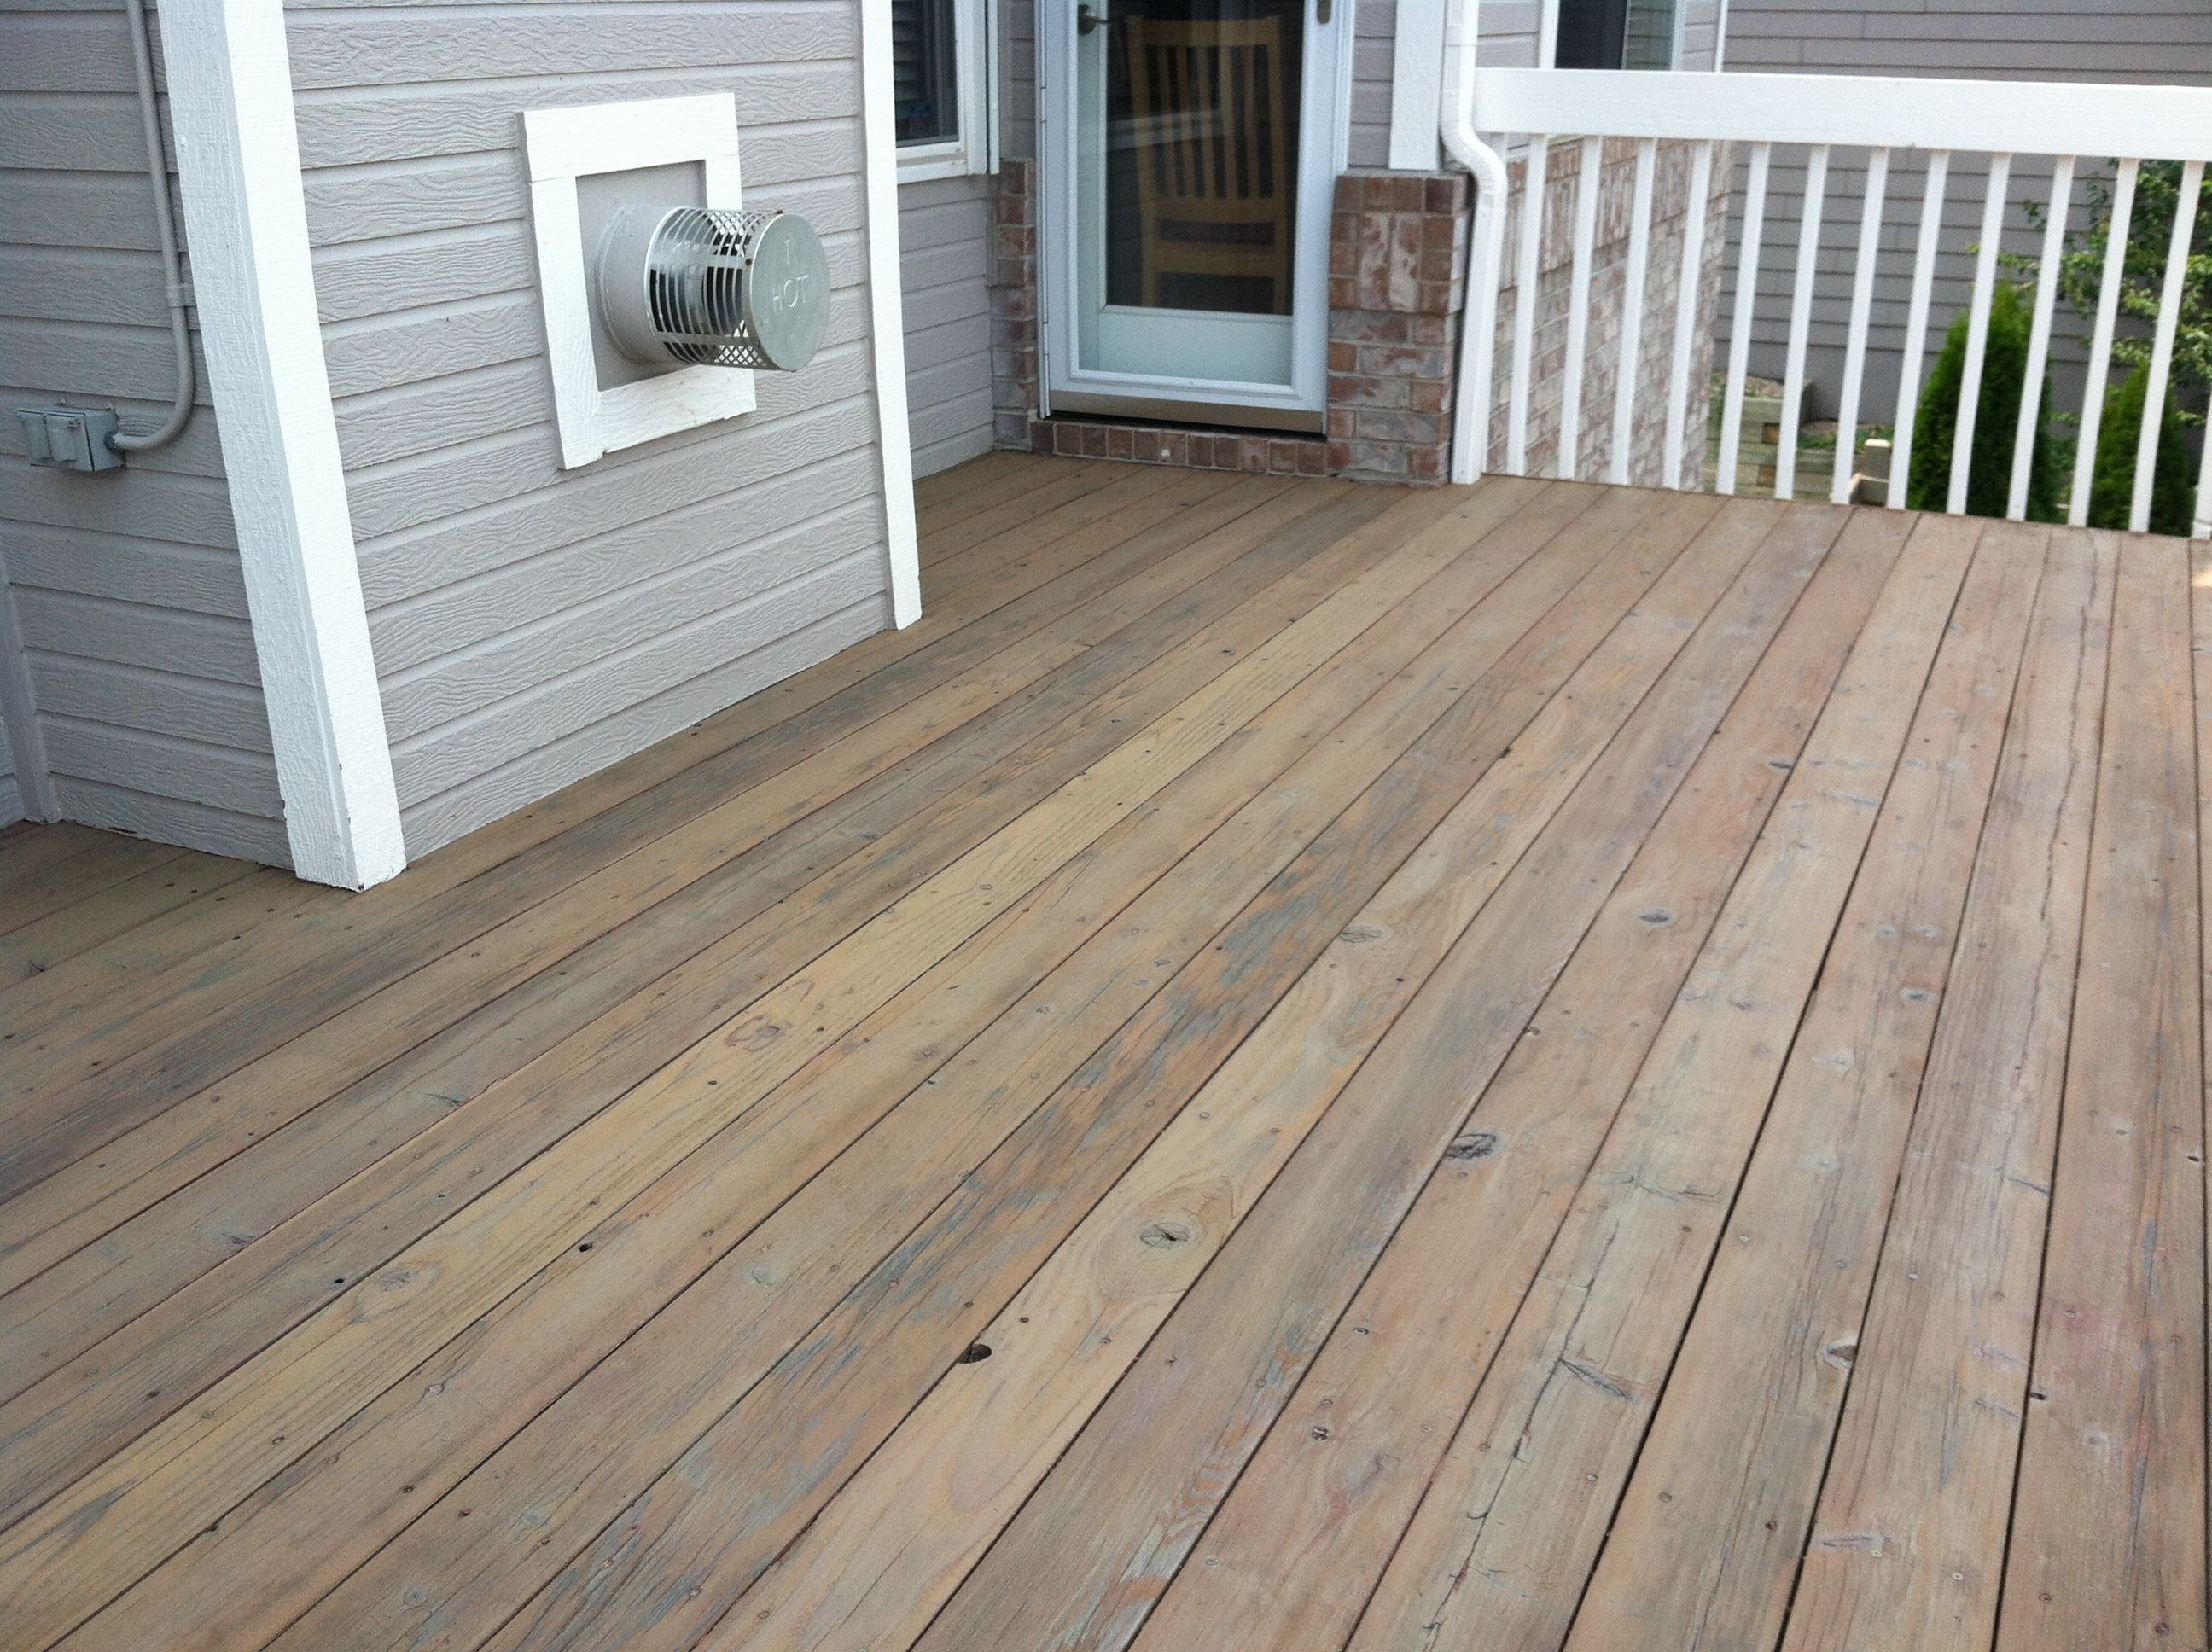 Pin By Colorado Deck Master On Best Deck Stains Staining Deck Deck Colors Deck Stain Colors